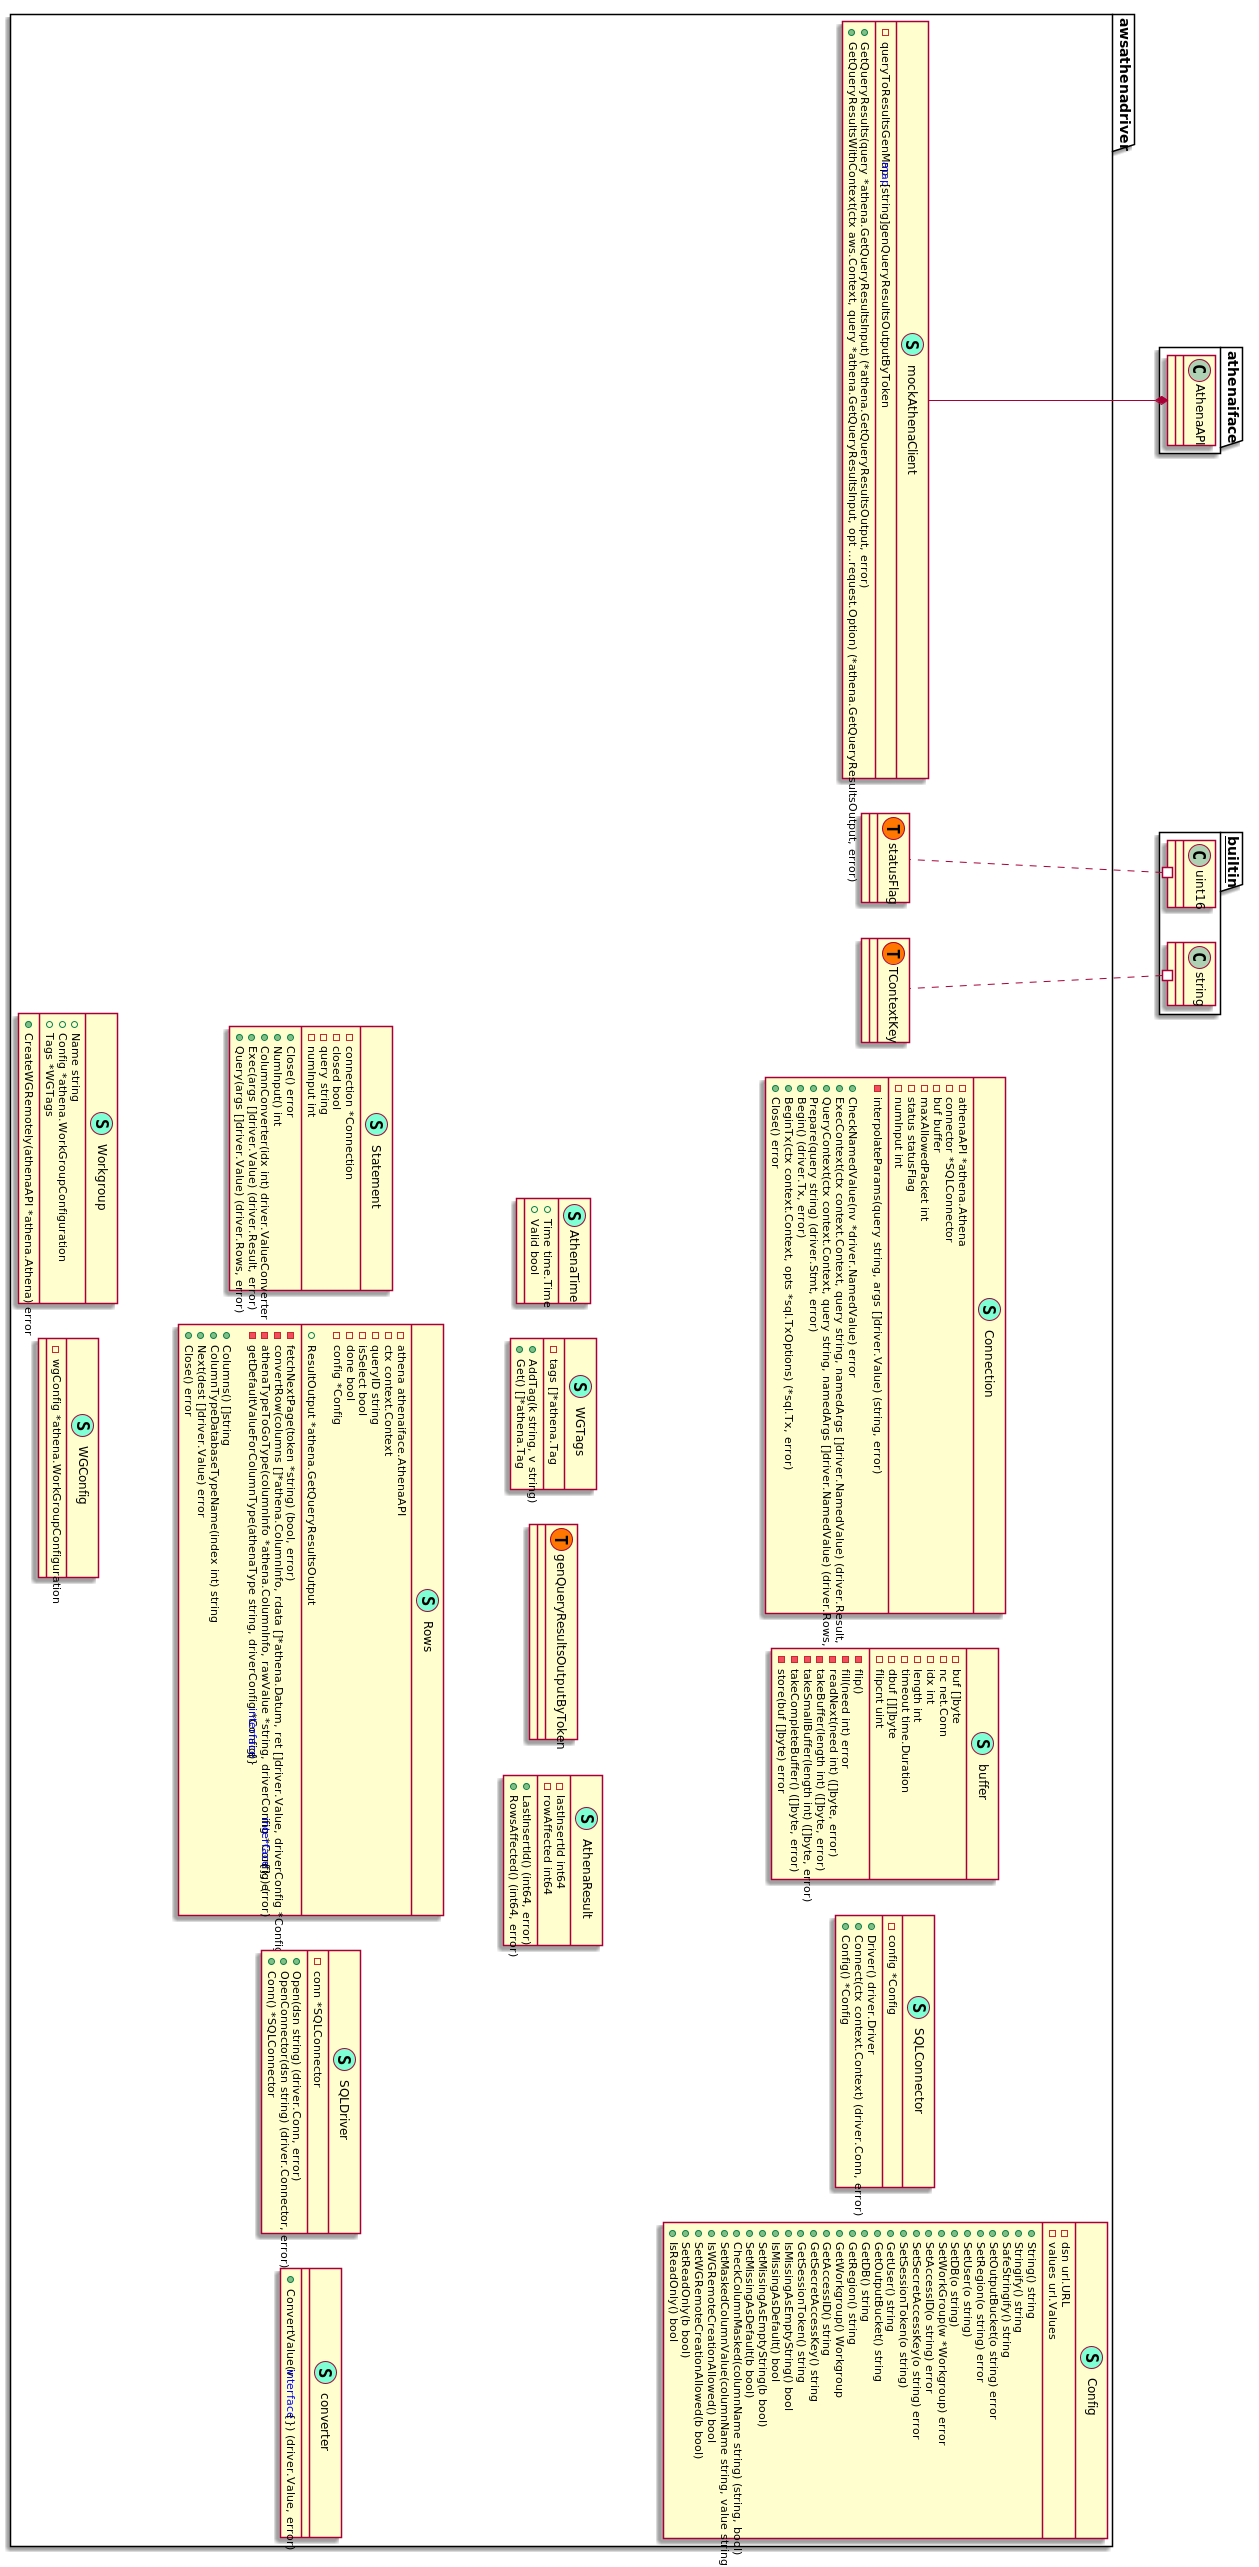 `athenadriver` Package's UML Class Diagram